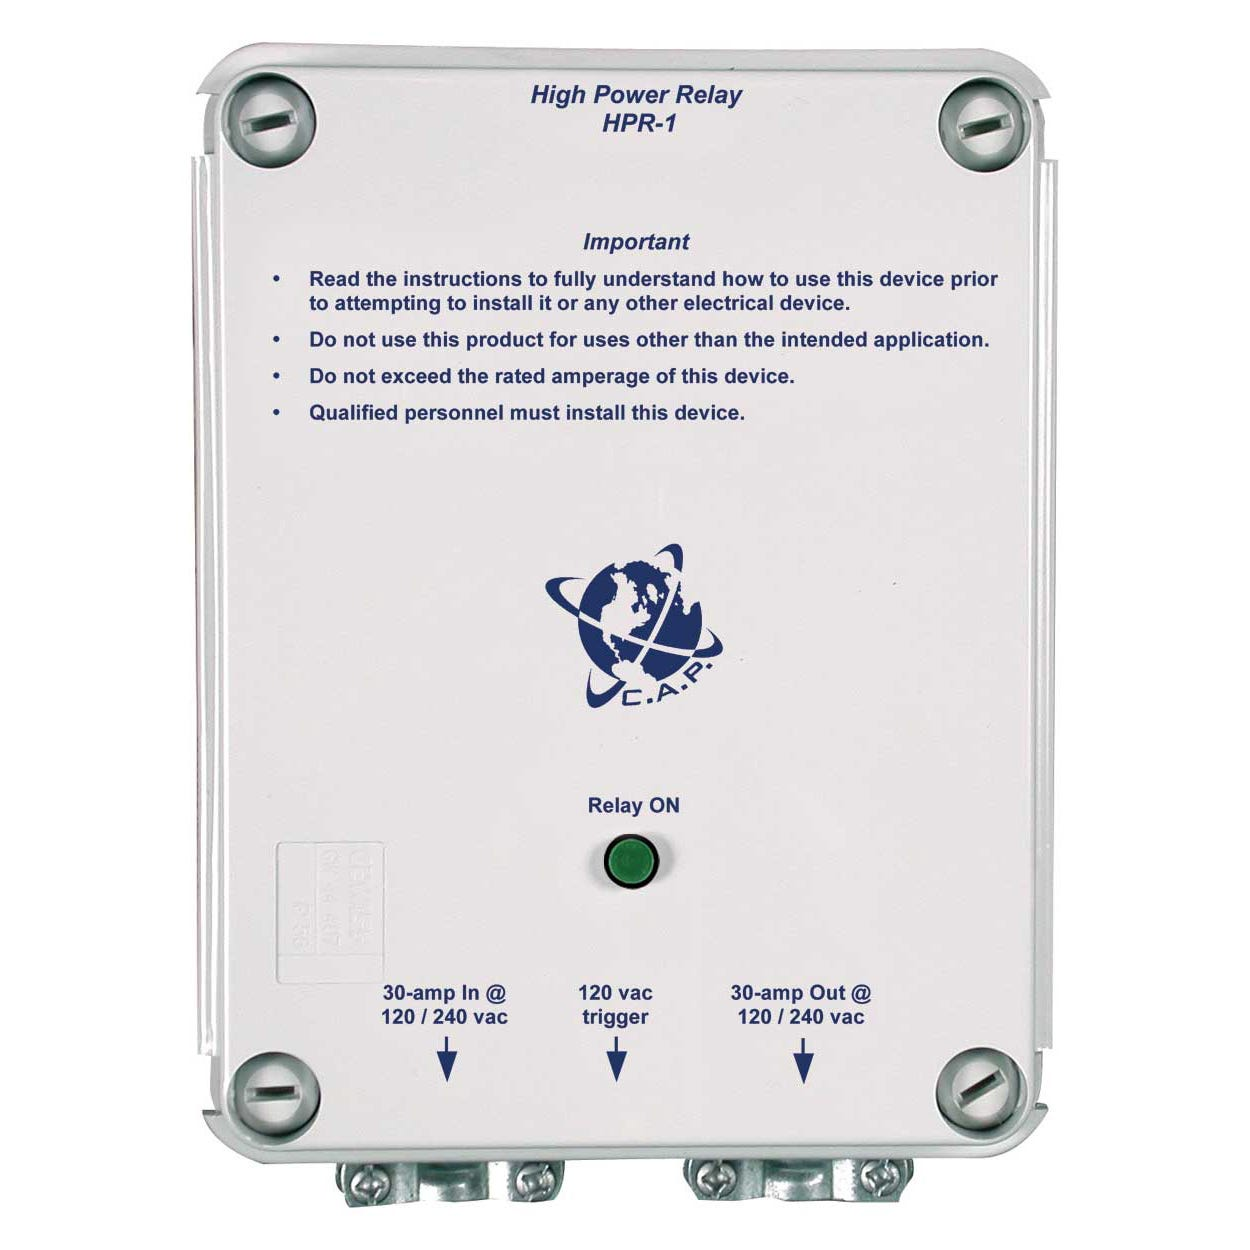 C.A.P. HPR-1 High Power Relay, 30 amps @ 120/240v The HPR-1 is a hardwired 30 amp capacity, 230 volt version of the UPM-1. The HPR-1 is perfect for controlling higher loads such as large air conditioners or multiple HID ballasts. You supply 240 volt power to the input side of the HPR-1. The air conditioner or ballasts to be controlled are then hard-wired into the output side of the relay. The 16 foot trigger cable coming from the HPR-1 is then connected to your control device such as a time clock, thermostat or environmental controller. When the device applies power to the trigger cable, the relay in the HPR-1 applies power to the connected equipment. The HPR-1 is rated at 30 amps @ 240 volts. 3 years no hassle warranty.